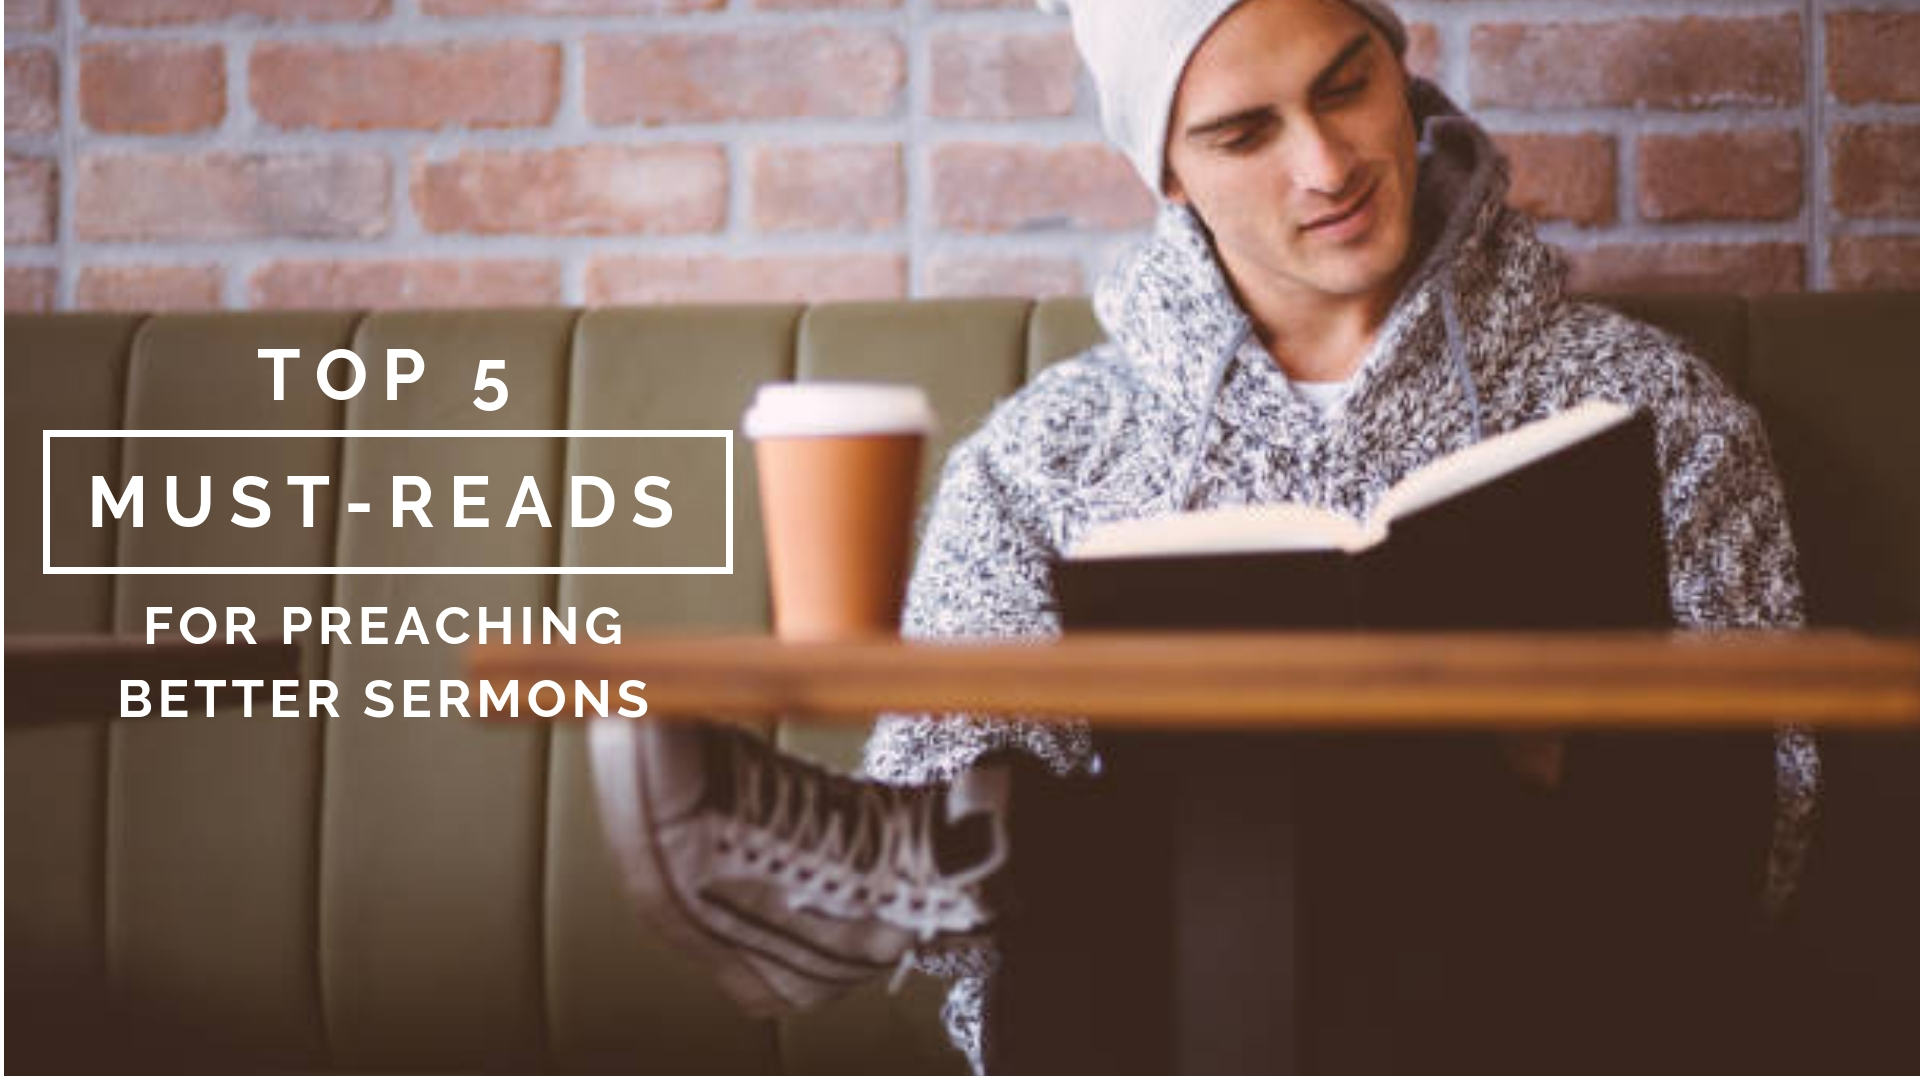 Top 5 Best Books About Preaching - Recommended Must-Reads